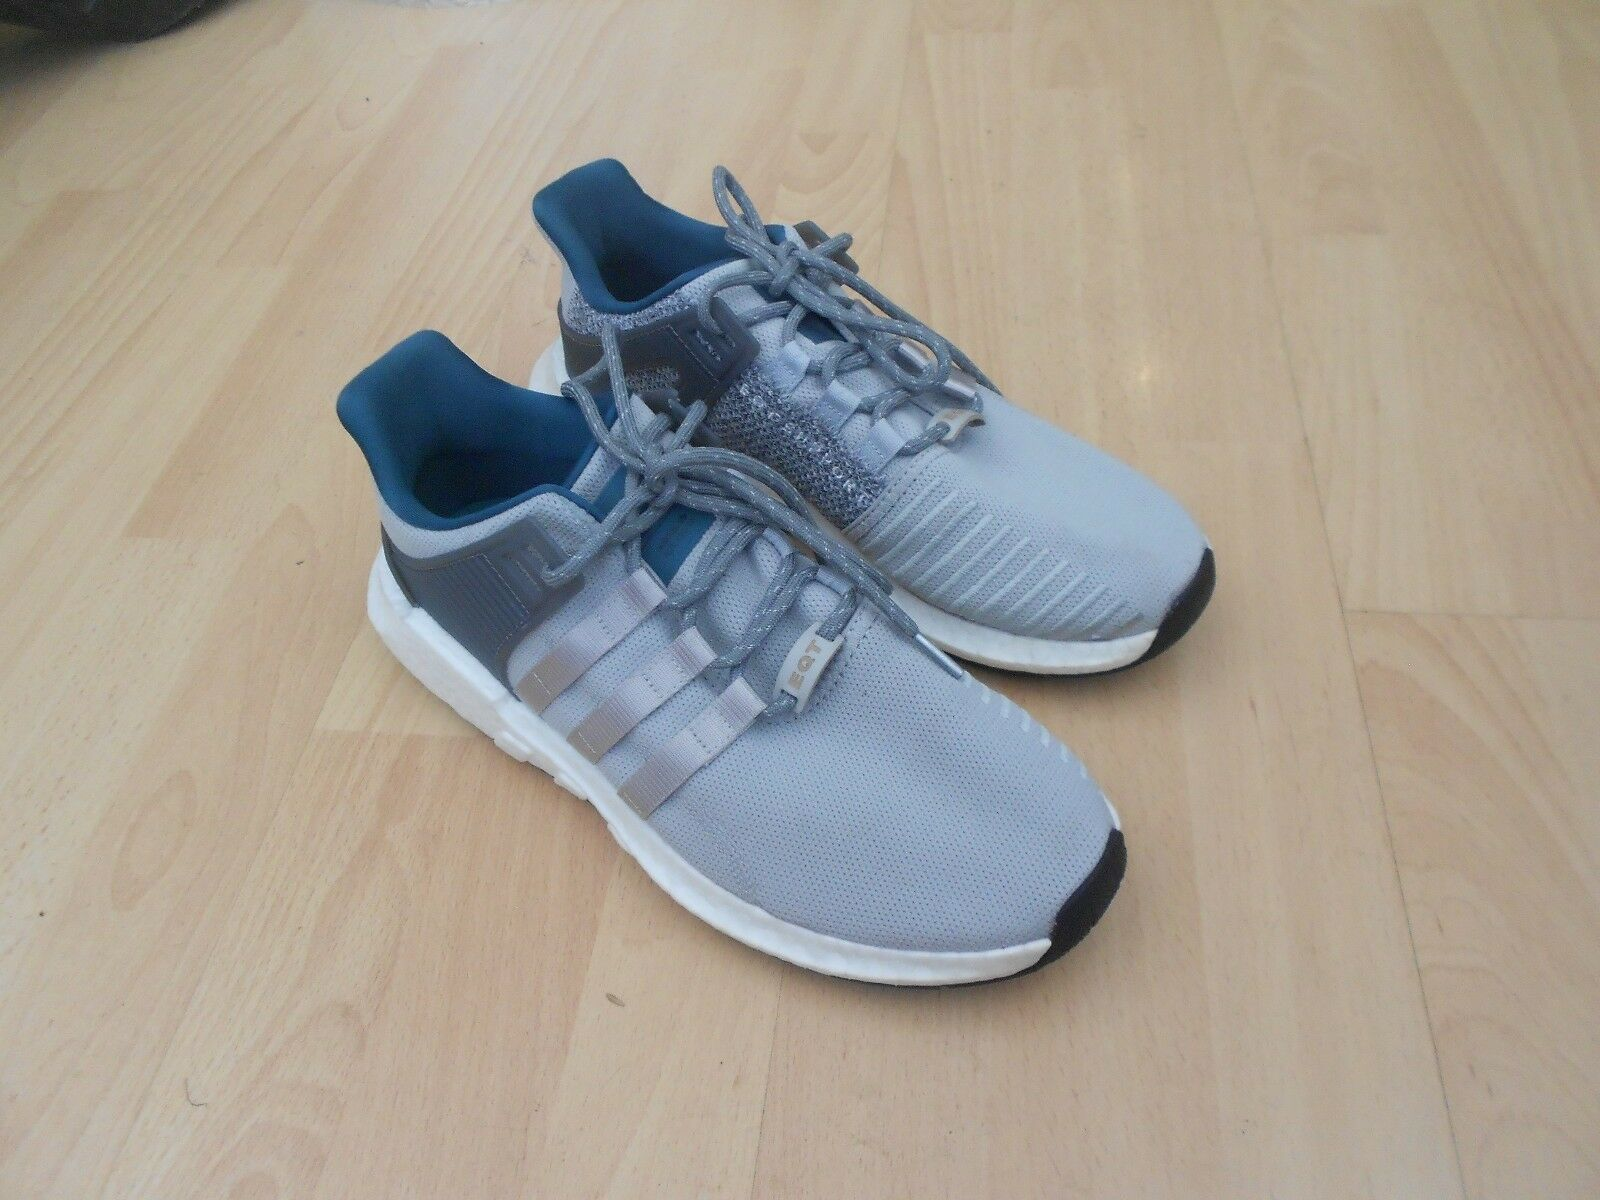 ADIDAS EQT SUPPORT 91-17 TRAINERS UK SIZE 10 - , IN  GOOD CONDITION